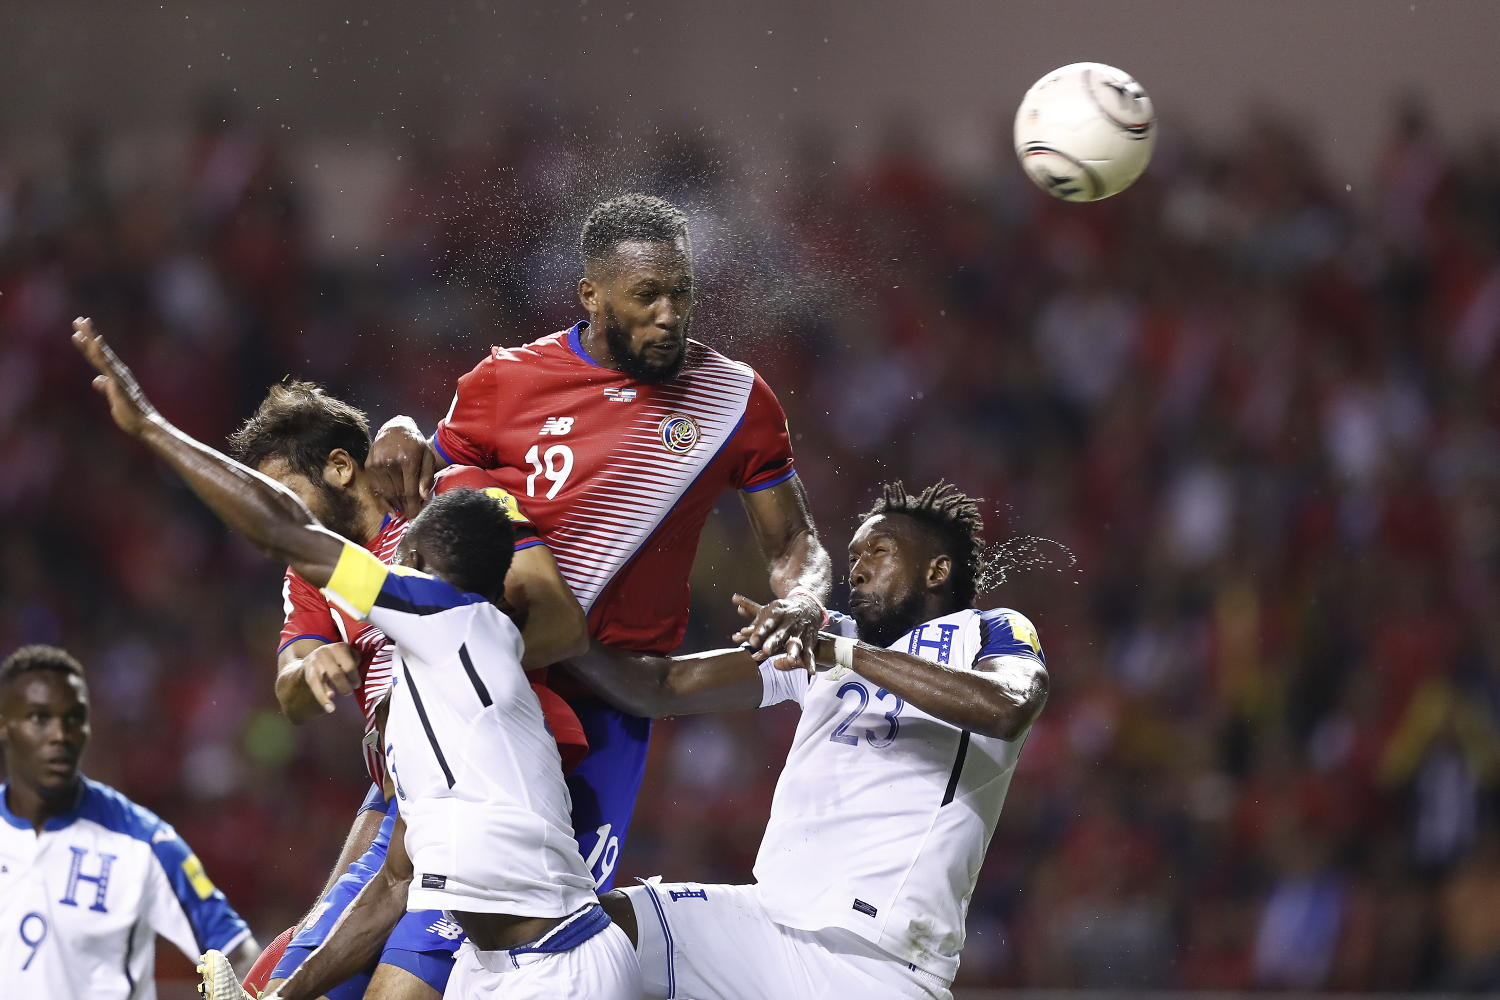 0ee53b7a556 The moment Kendal Waston headbutts the goal officially qualifying Costa  Rica to the 2018 FIFA World Cup Russia. Foto José Cordero